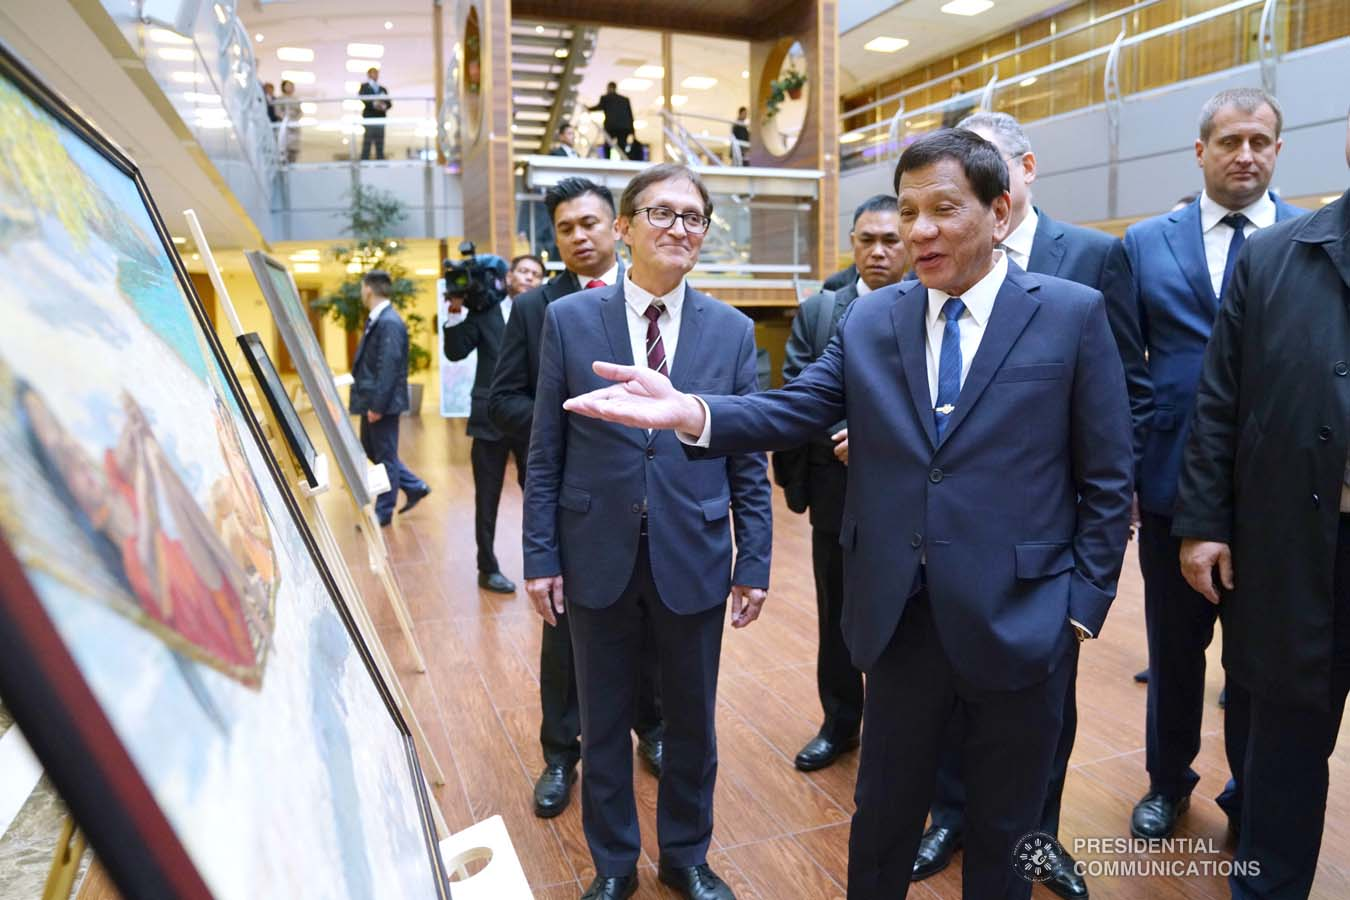 President Rodrigo Roa Duterte admires the artwork displayed during the ASEAN-Russian Exhibition at the Moscow State Institute of International Relations (MGIMO) University in Moscow, Russian Federation on October 05, 2019. JOEY DALUMPINES/PRESIDENTIAL PHOTO